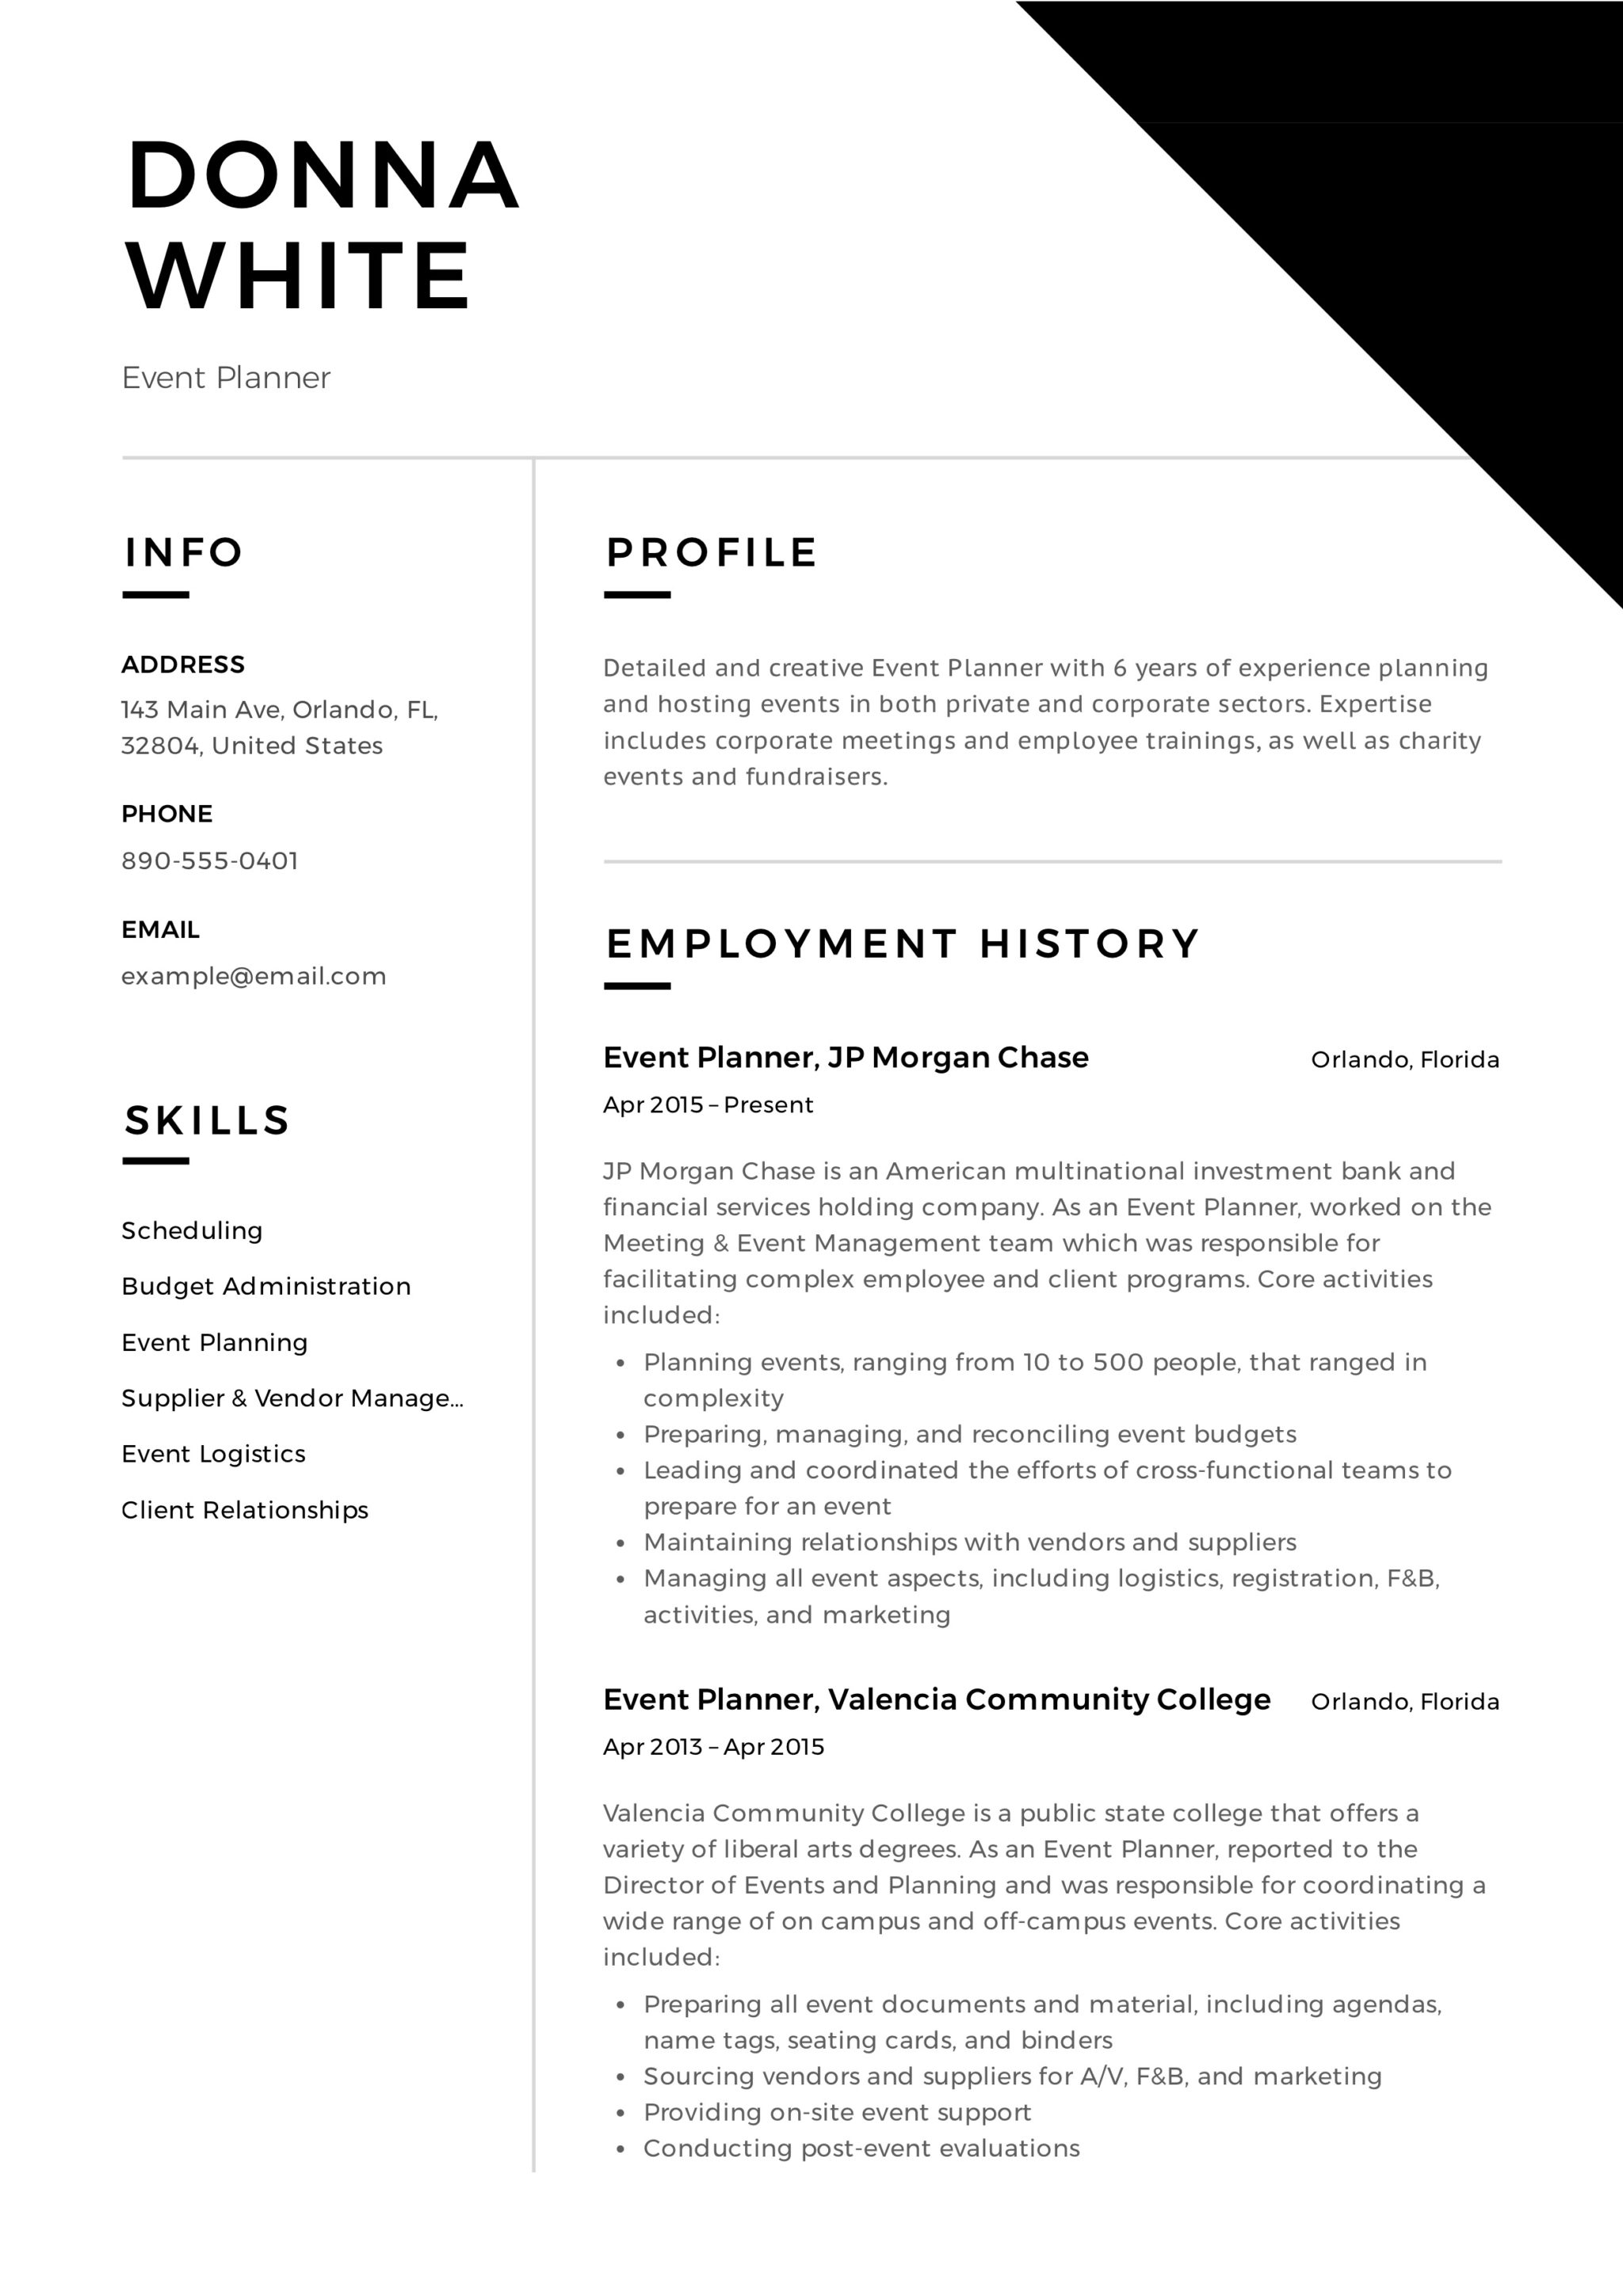 Guide Event Planner Resume 12 Samples Pdf Amp Word